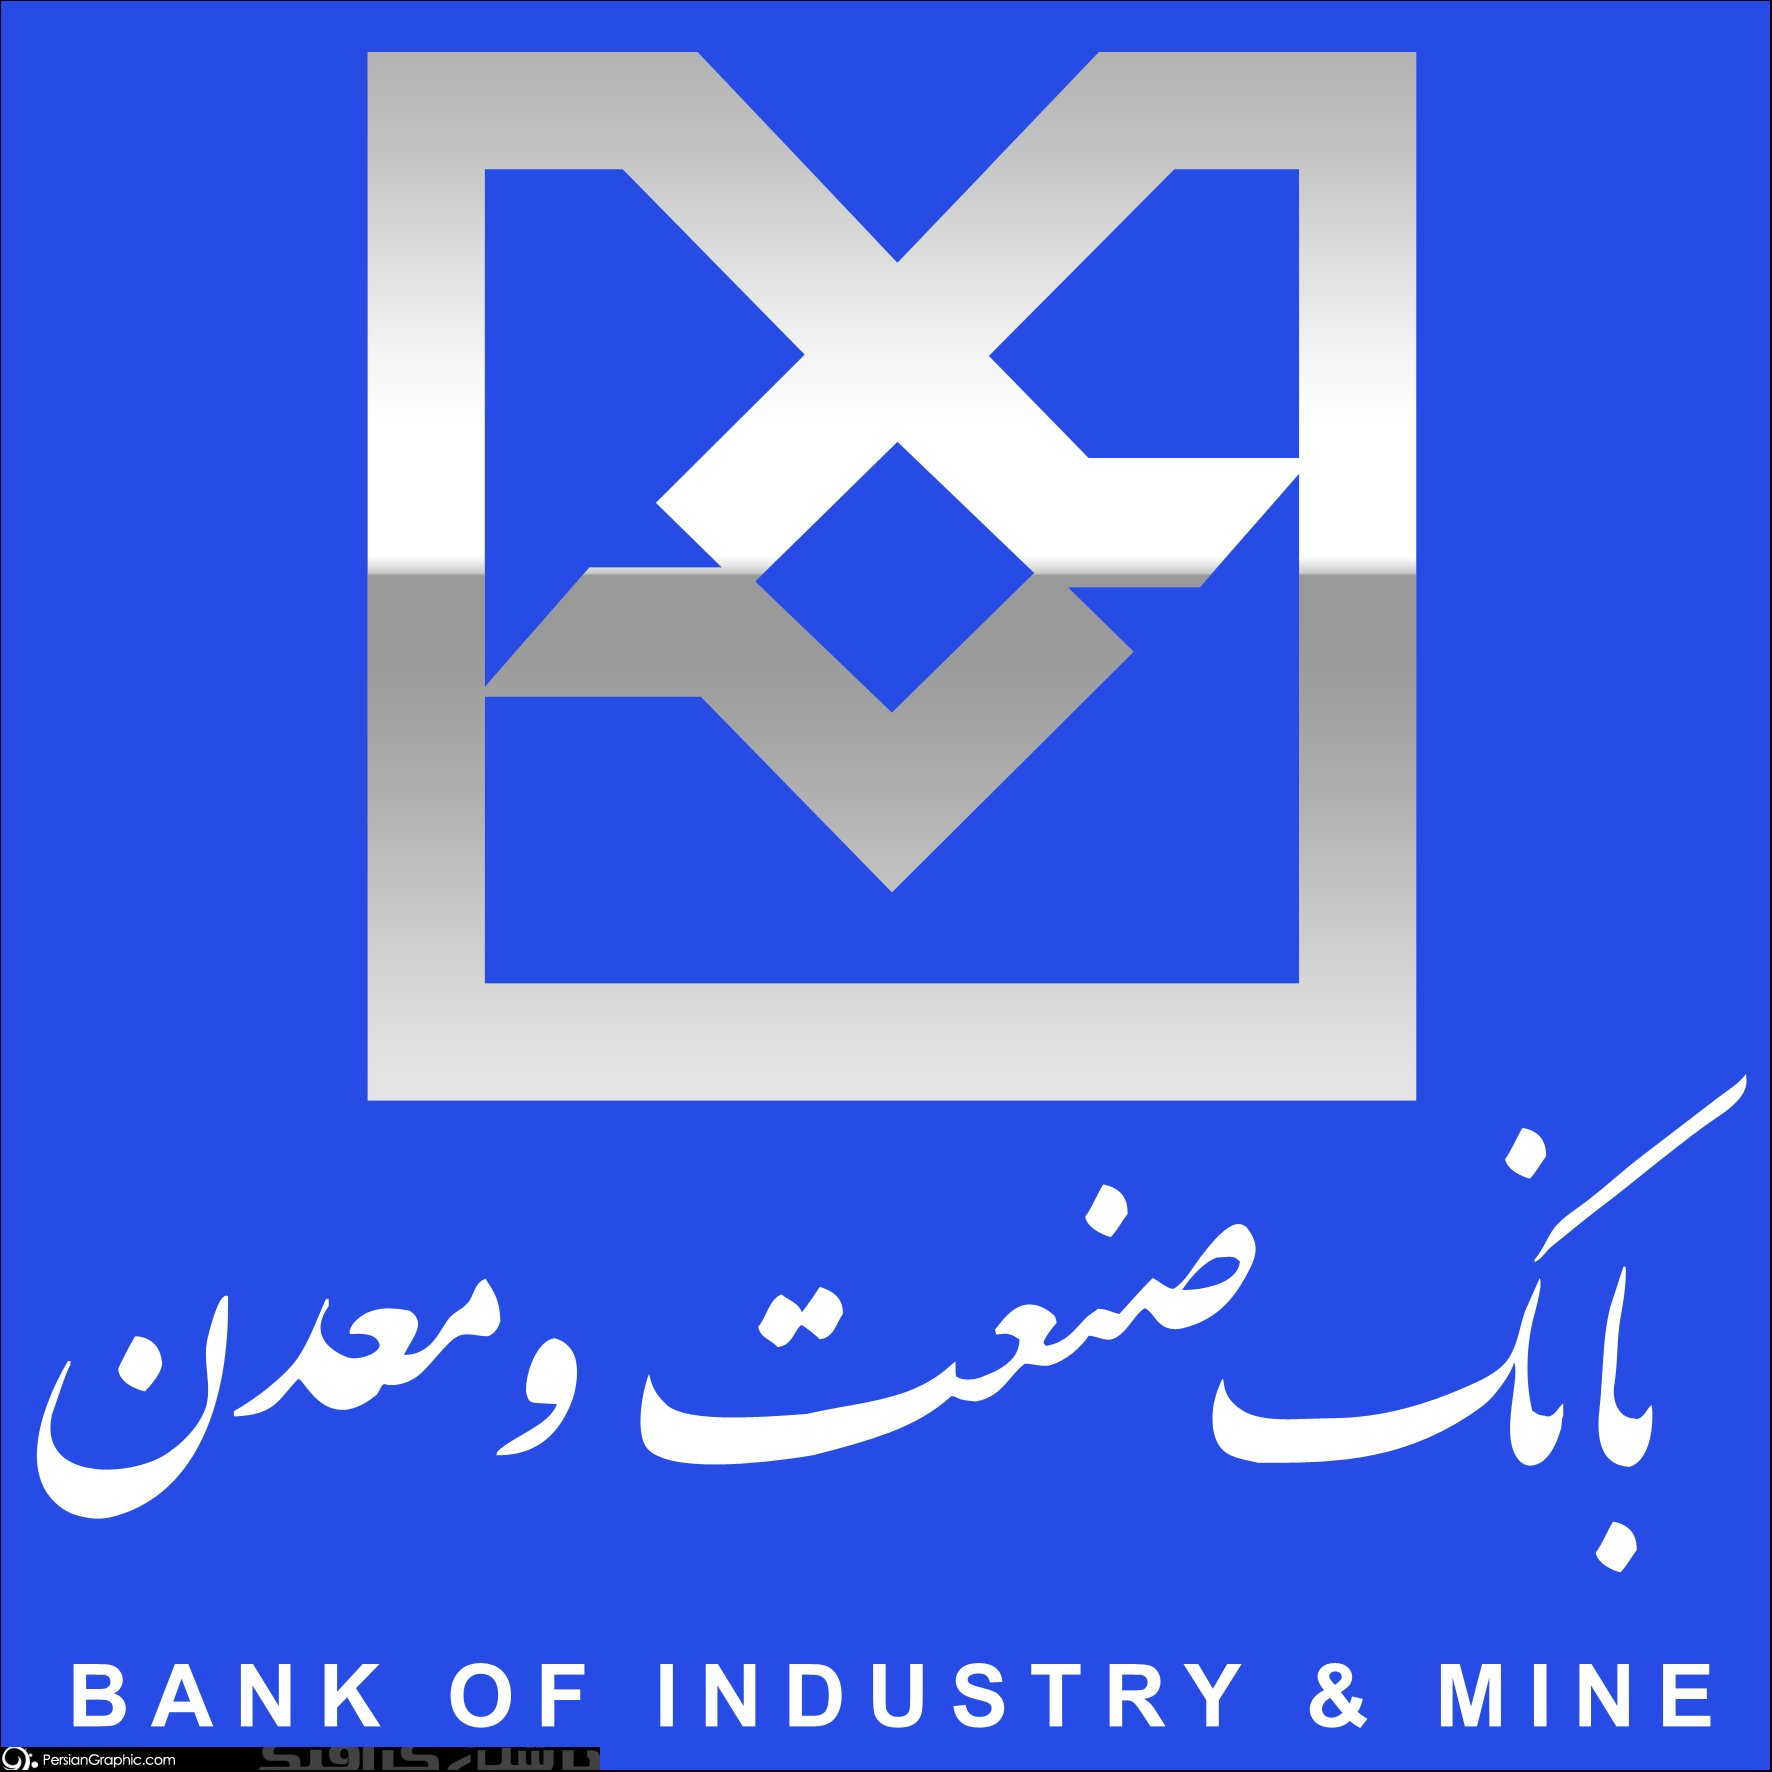 Operation of 2 industrial projects in West Azarbaijan province with facilities of Bank of Industry and Mine